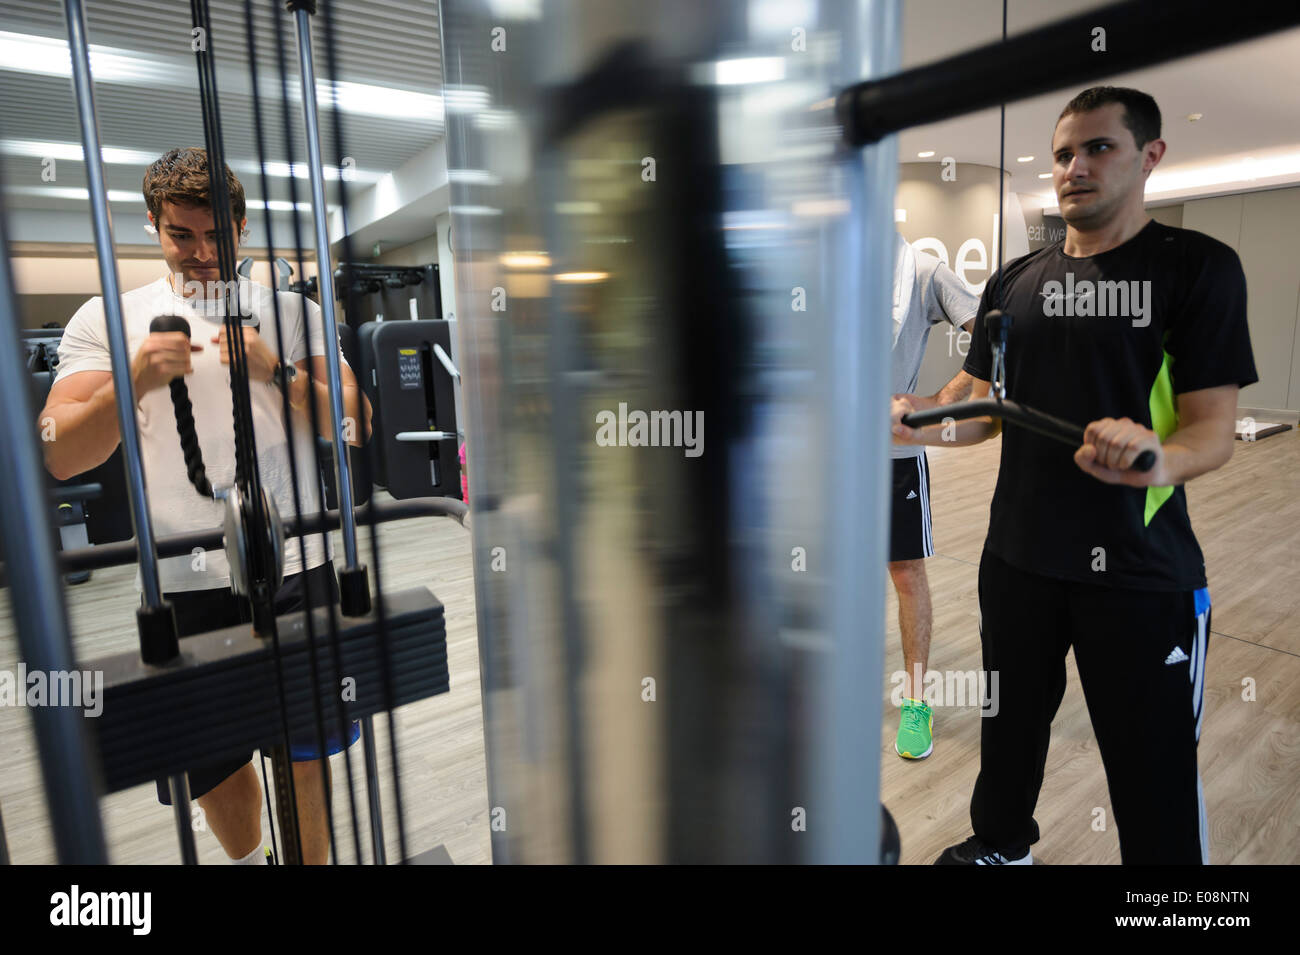 Men working out at the gym - Stock Image